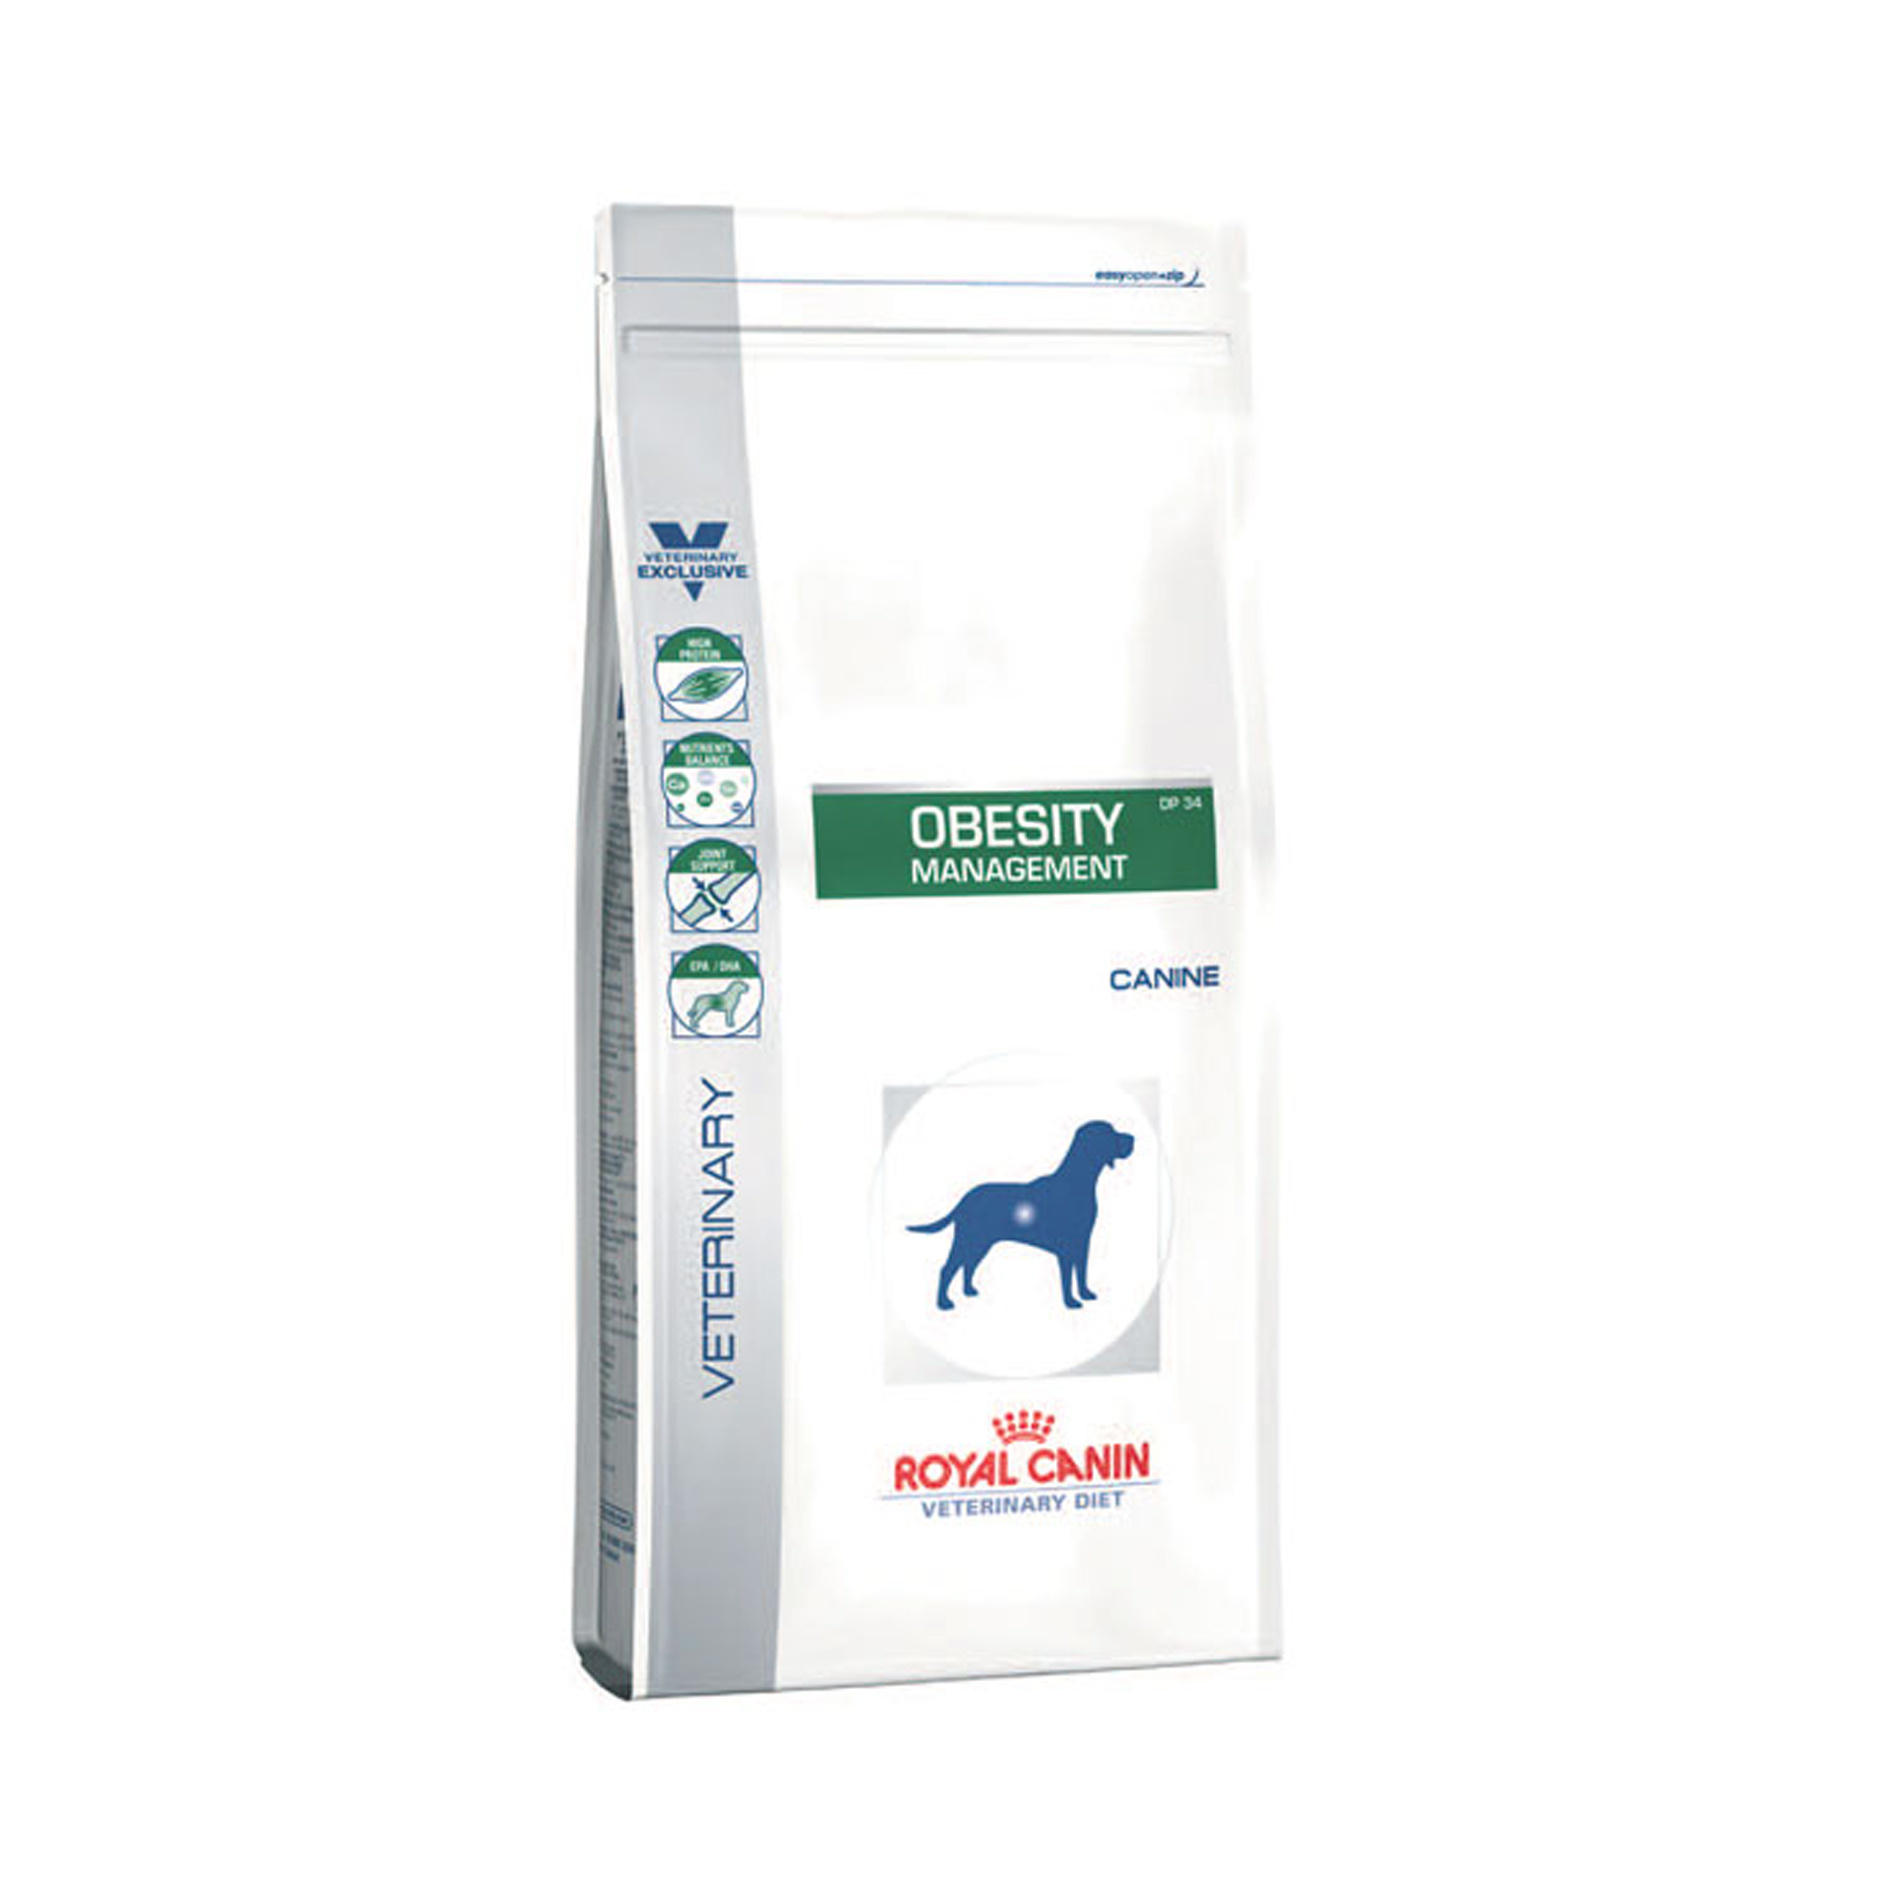 Royal Canin Canine Veterinary Diet Obesity Management Products